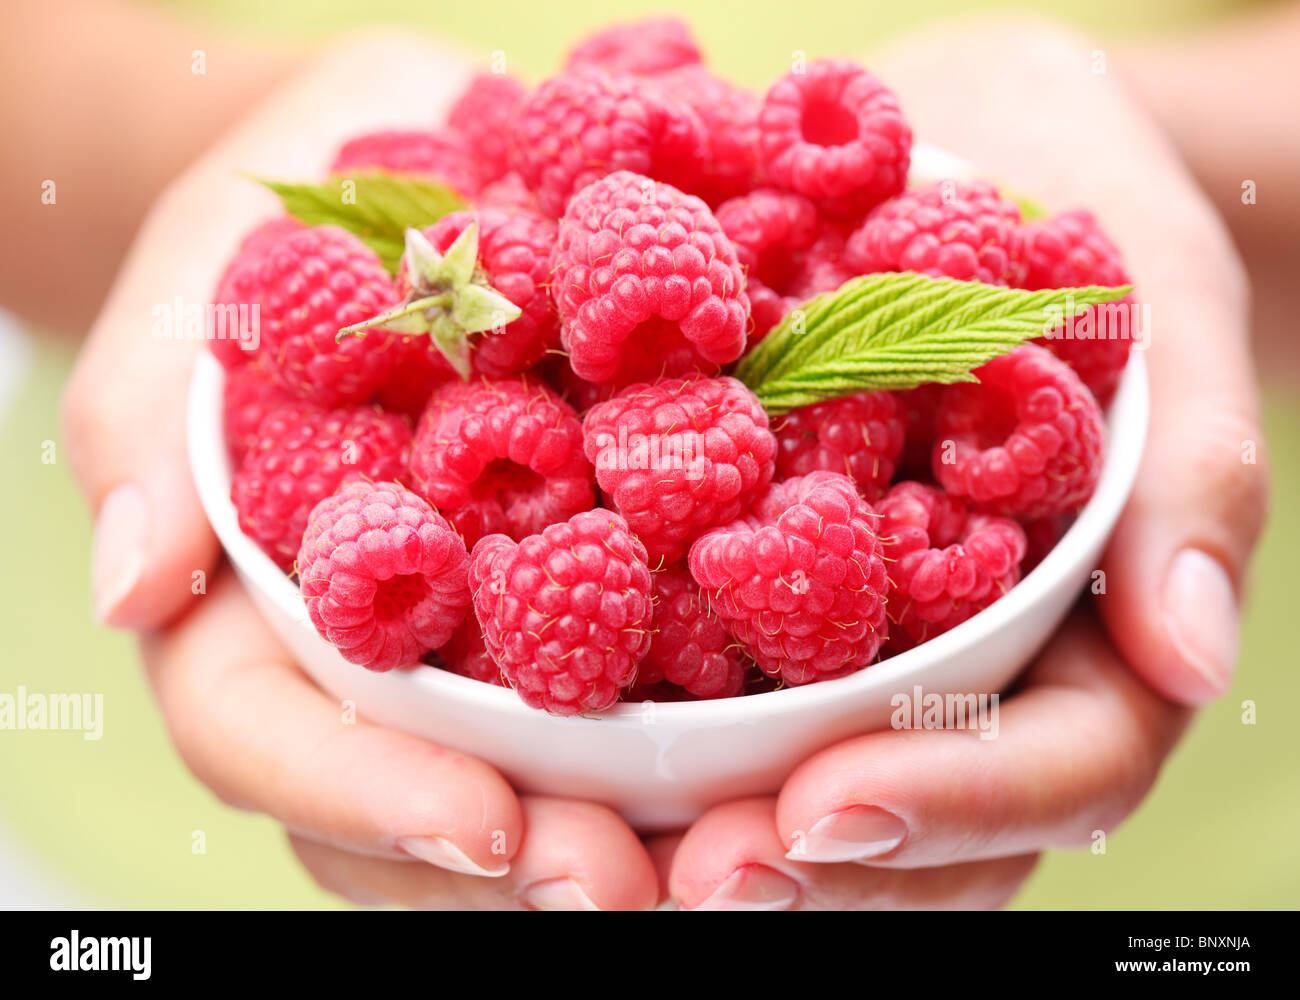 Crockery with raspberries in woman hands. - Stock Image